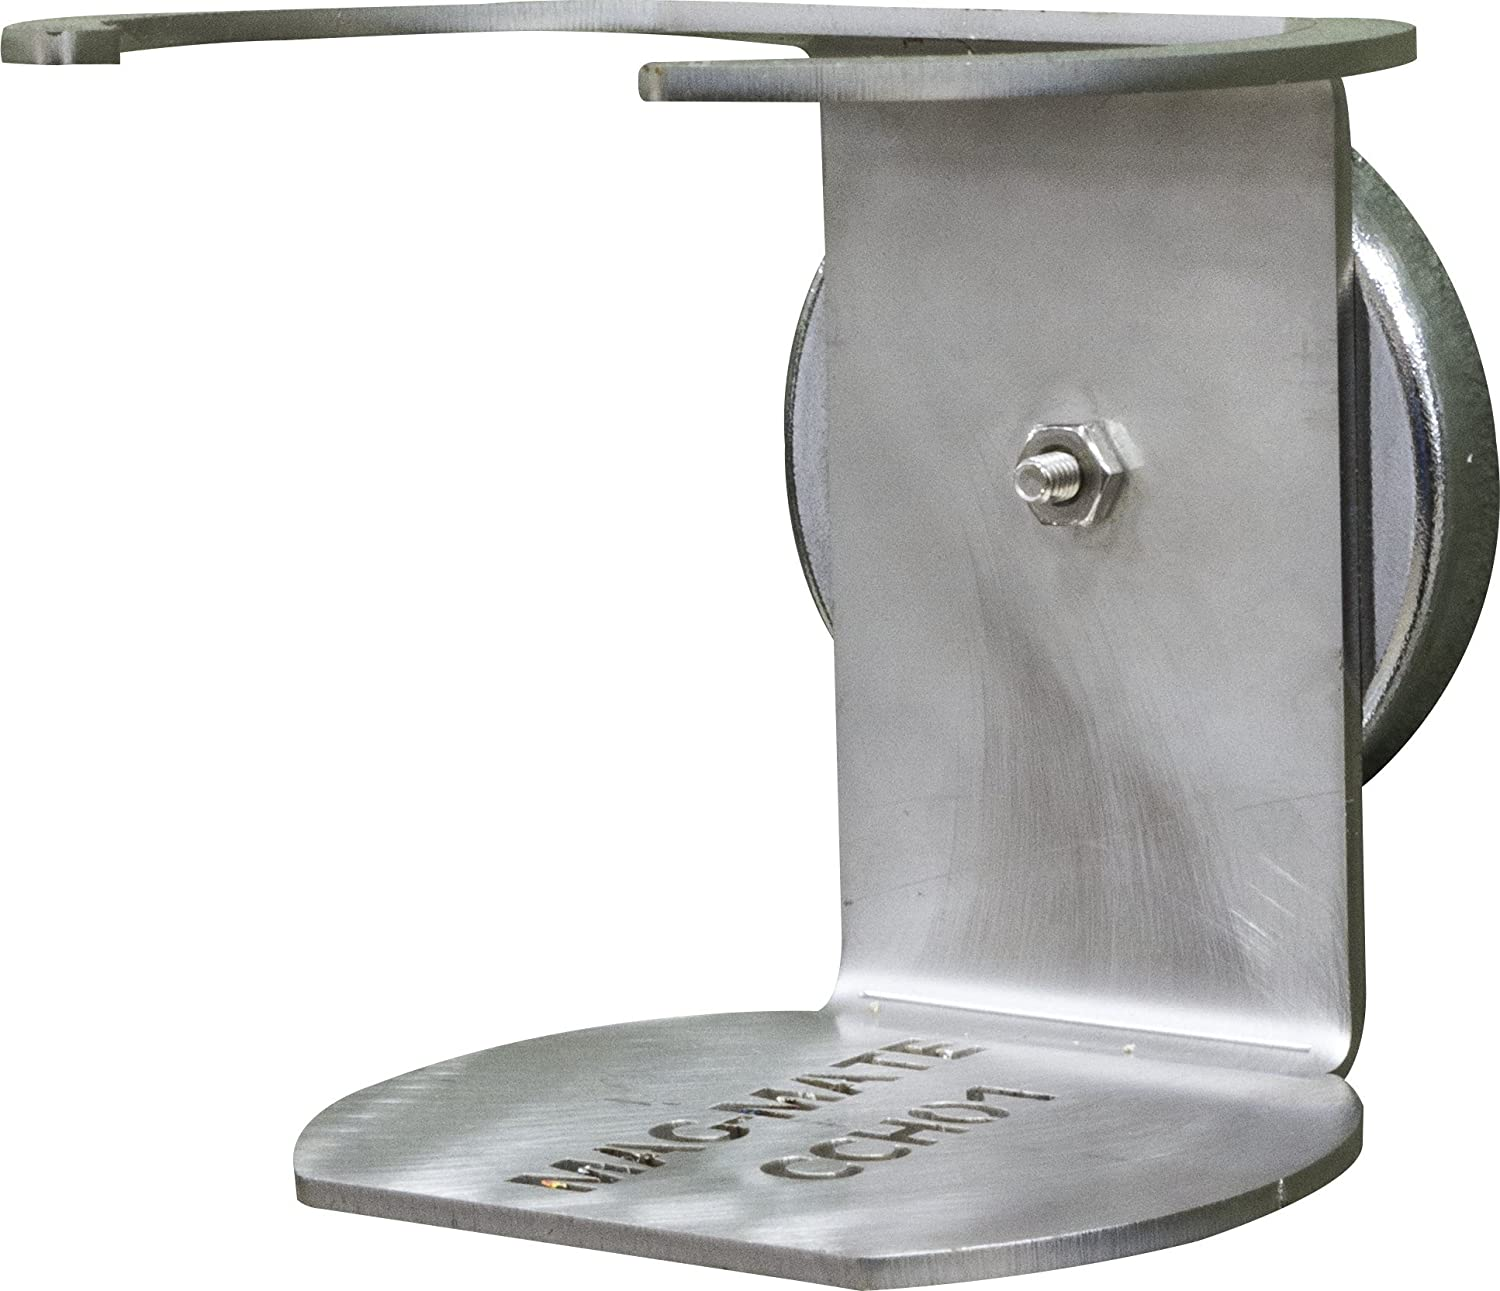 MAG-MATE CCH01 Can Cup Holder on a Cup Magnet, 41 lb